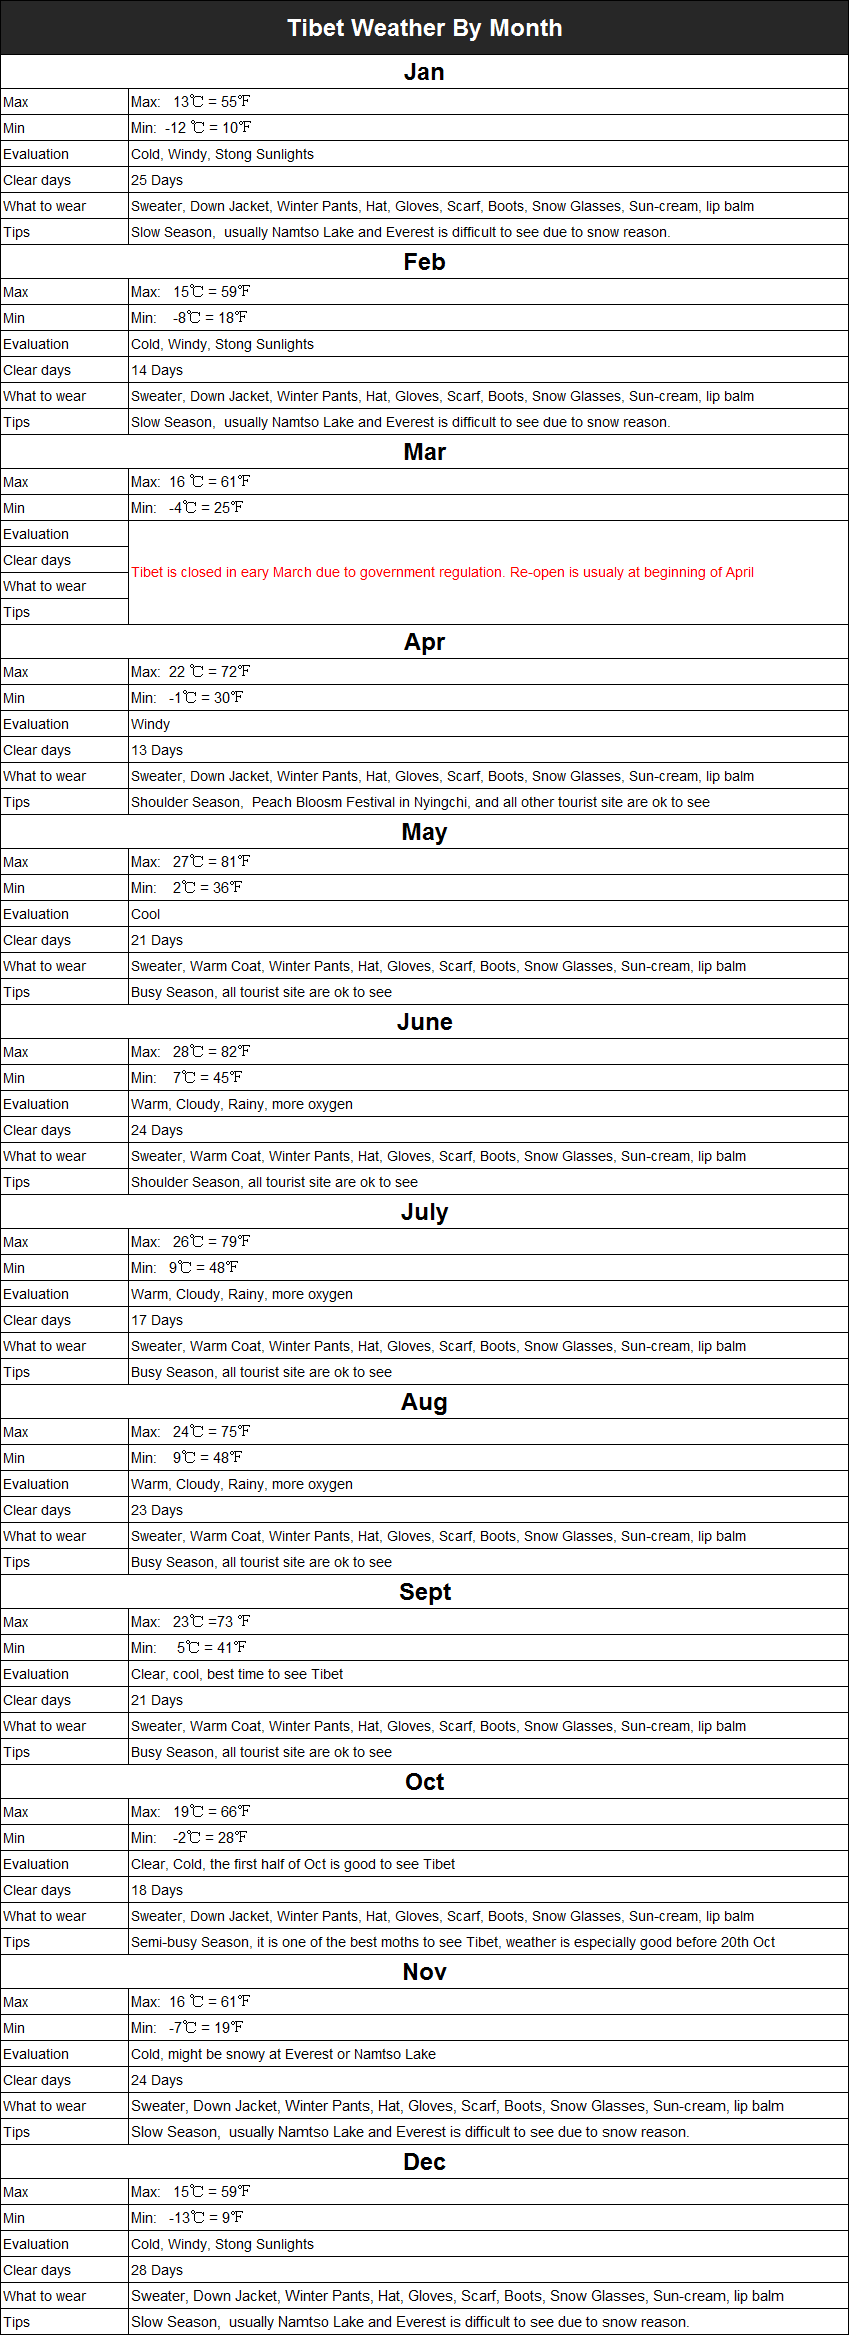 Tibet-Weather-Guide-By-Month.png